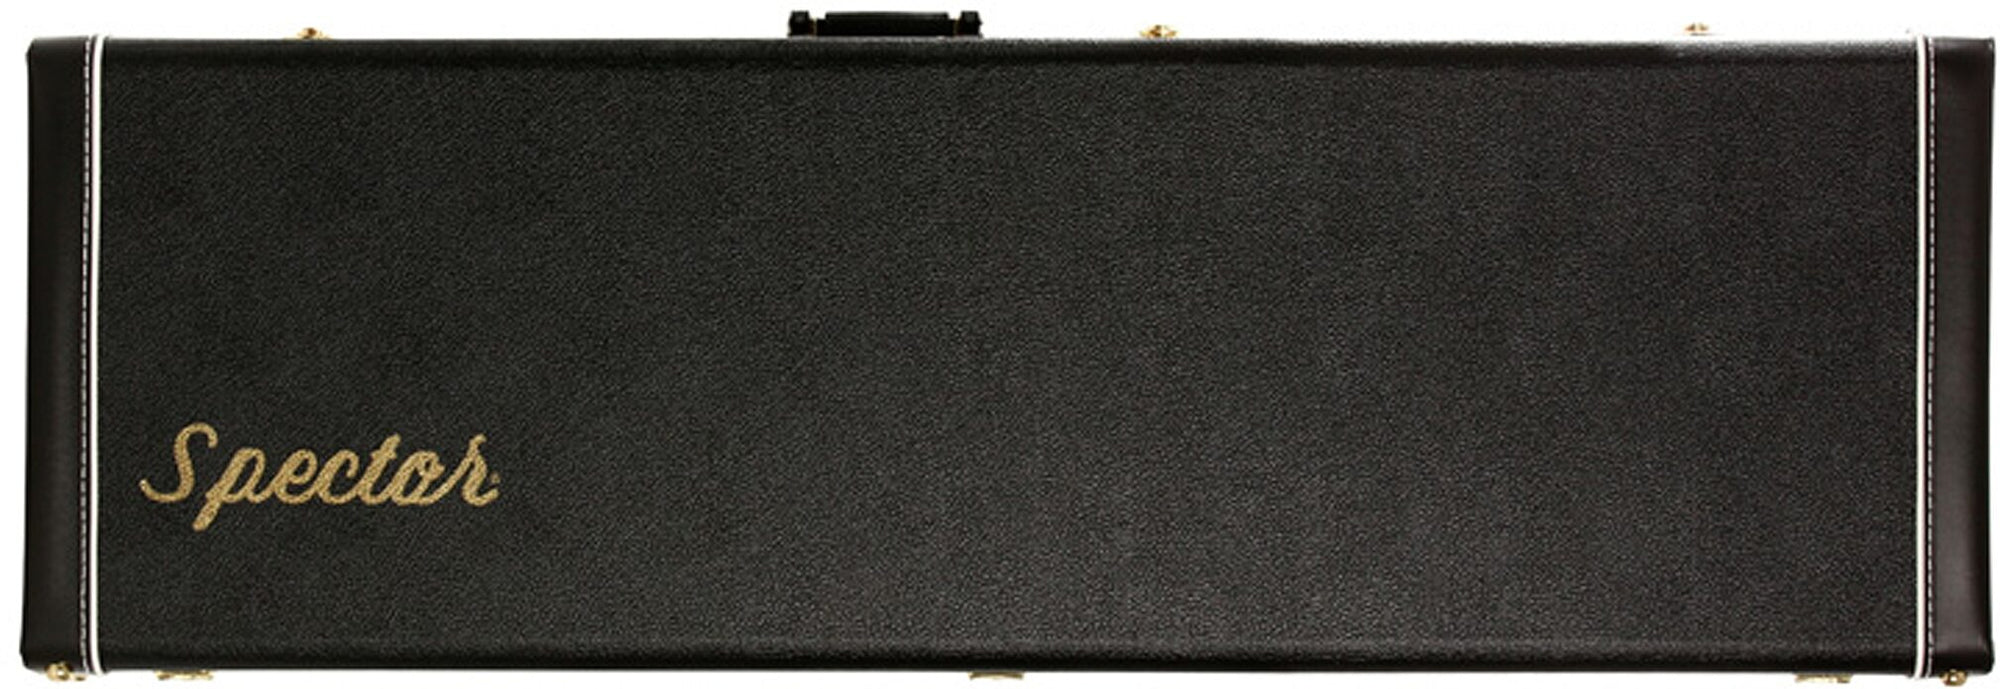 Spector Hardshell Case for NS-Style Basses